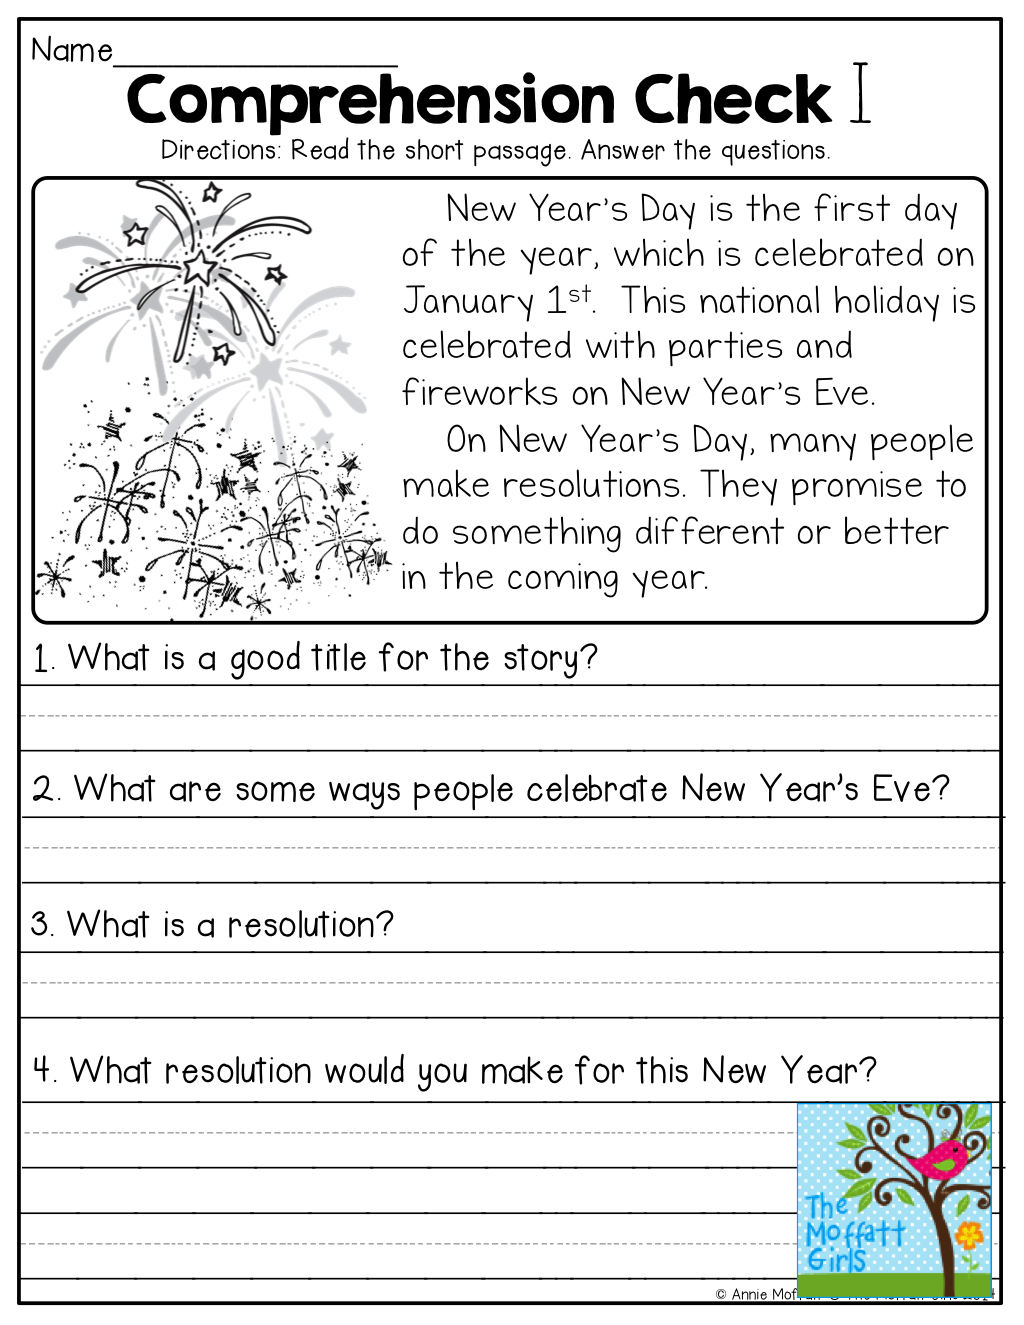 Worksheets Comprehension Passages For Grade 1 january no prep math and literacy 1st grade check reading comprehension checks tons of other printables